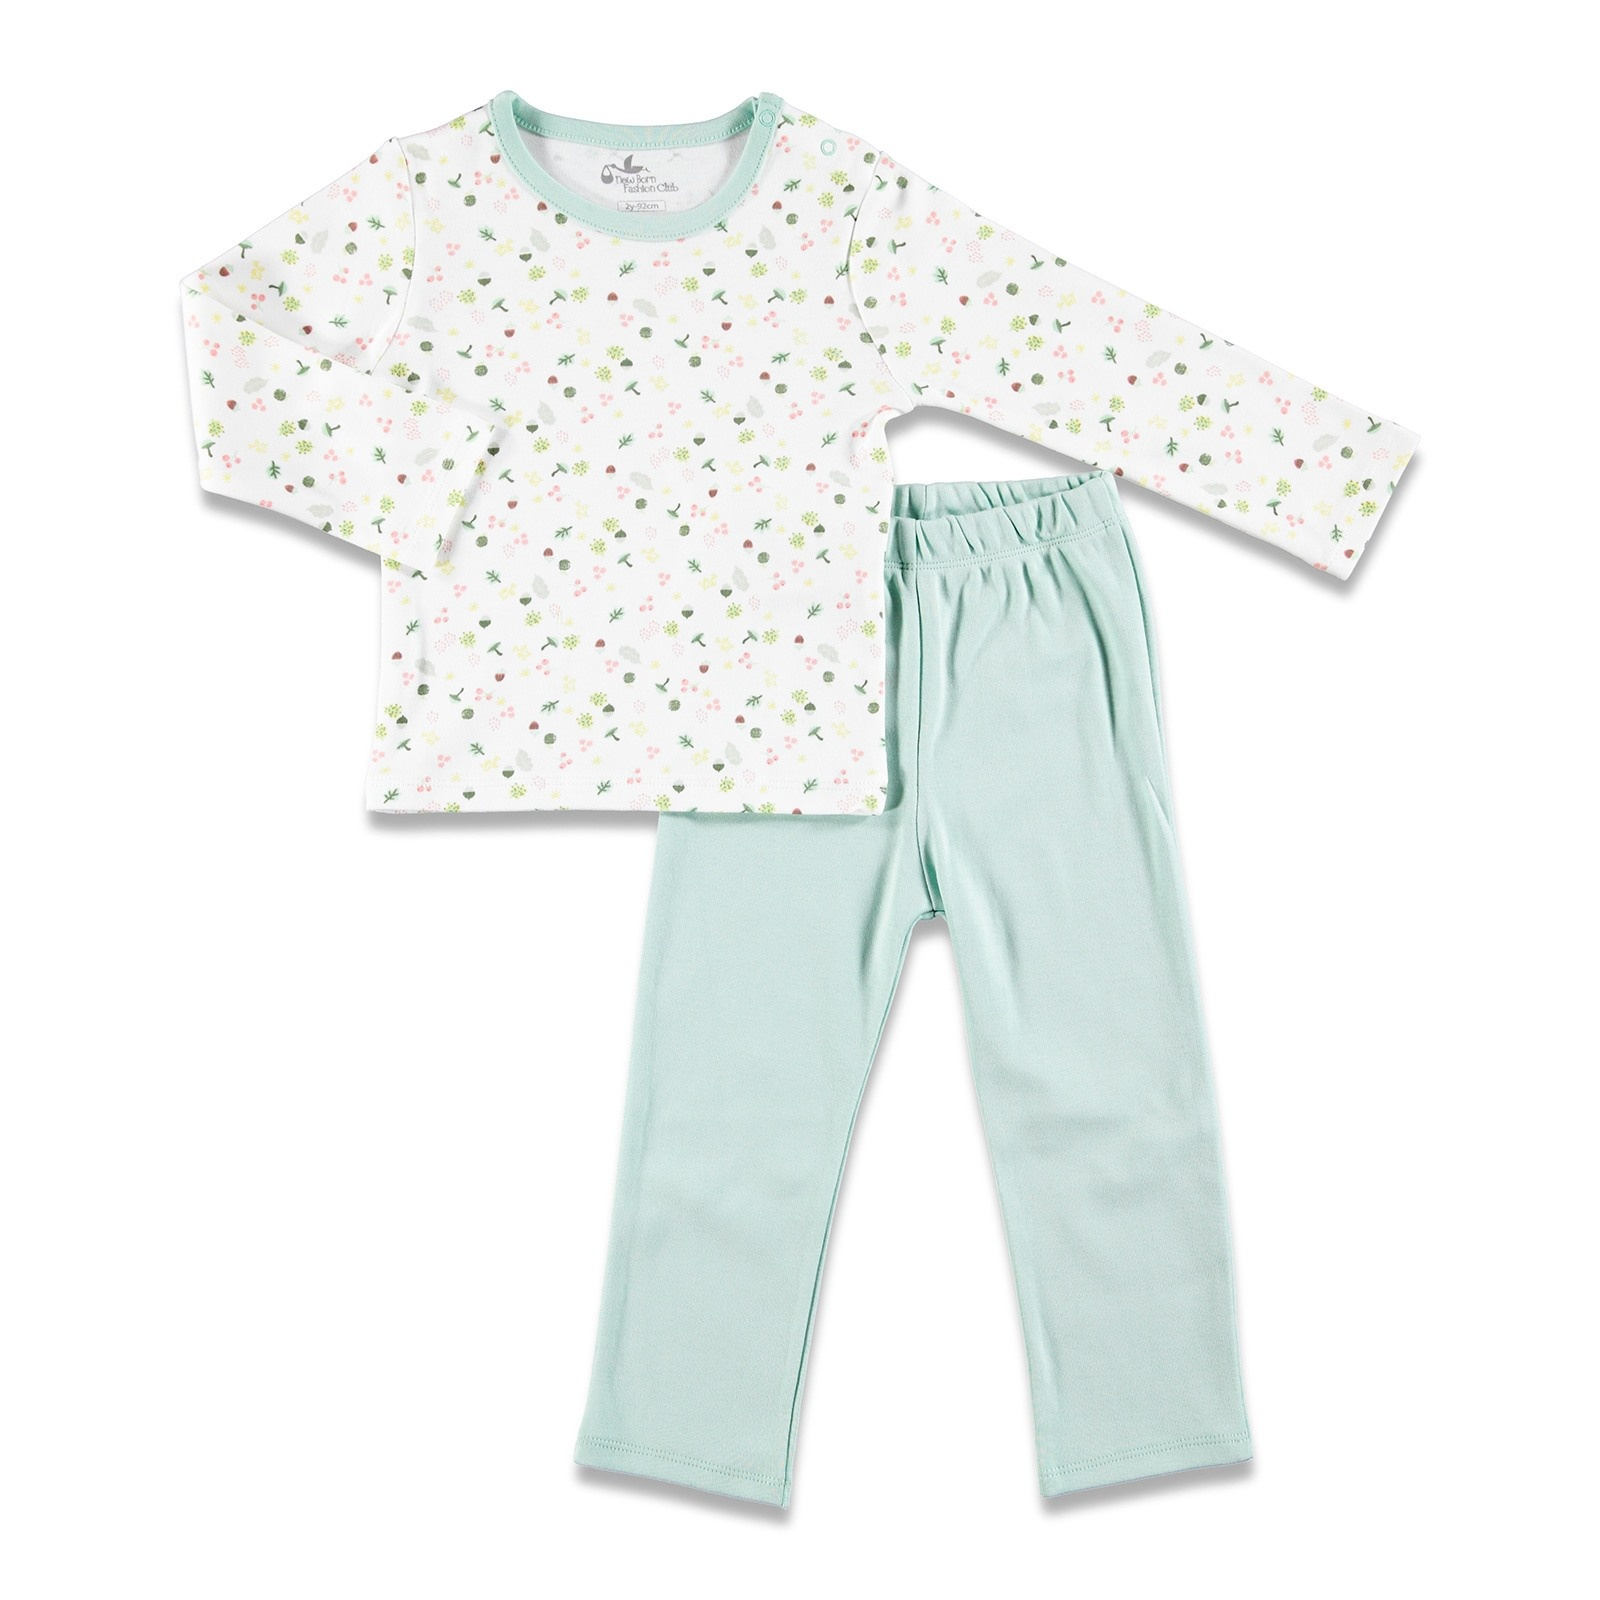 Ebebek Newborn Fashion Club Magical Forest Baby Pyjamas Set